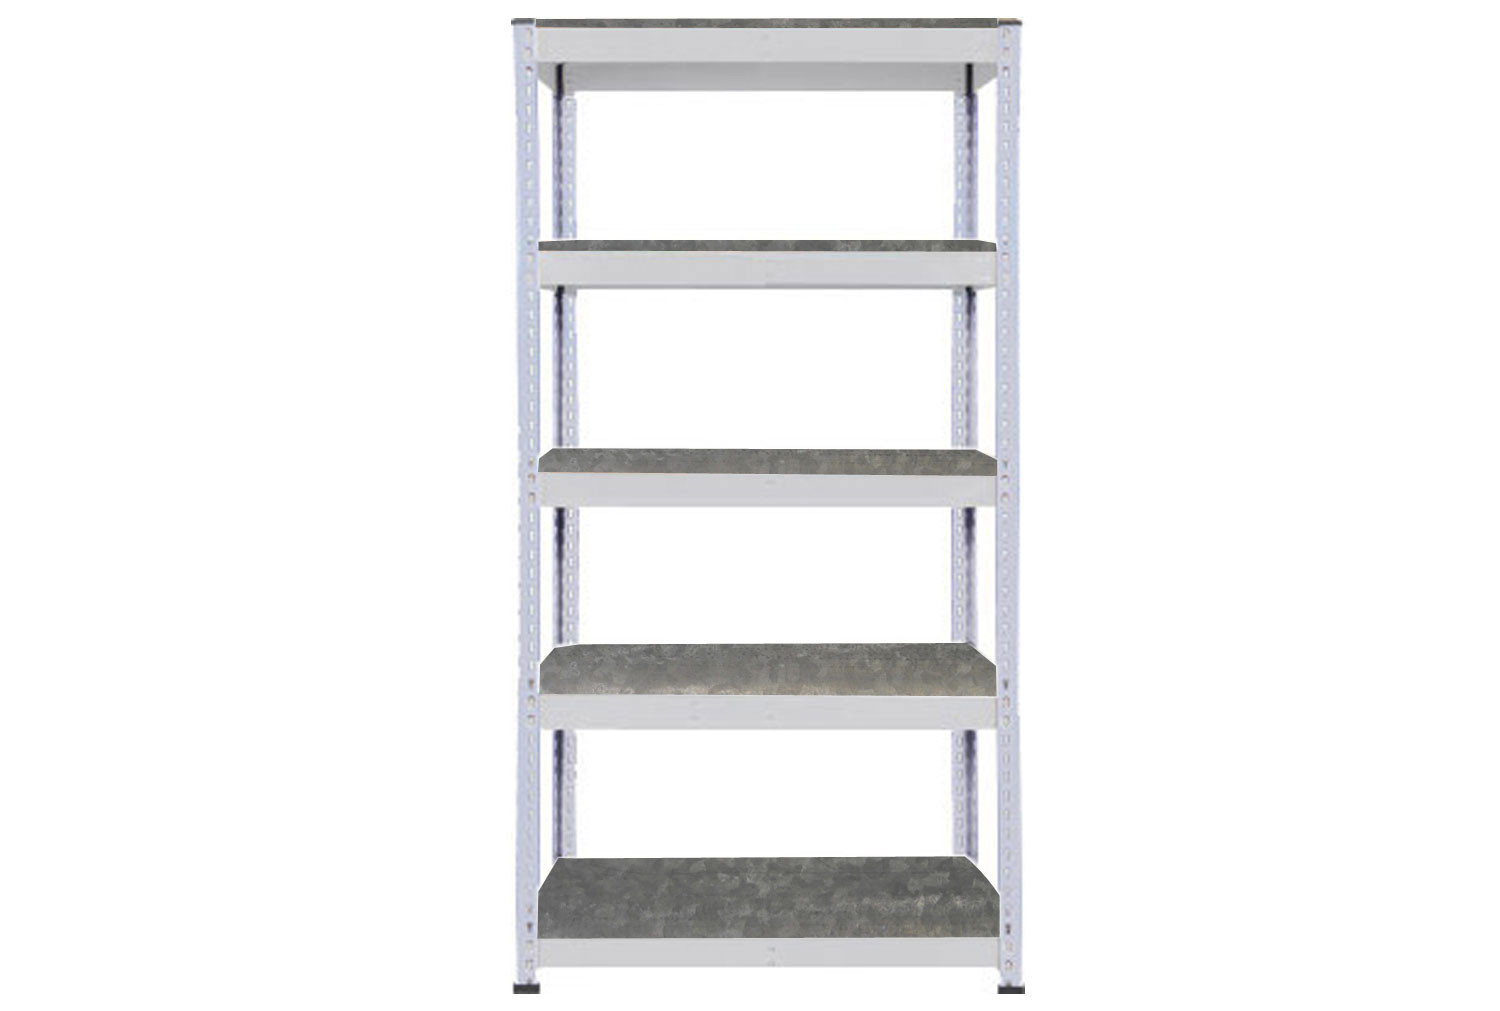 Rapid 1 Heavy Duty Shelving With 5 Galvanized Shelves 915wx1980h (Grey)